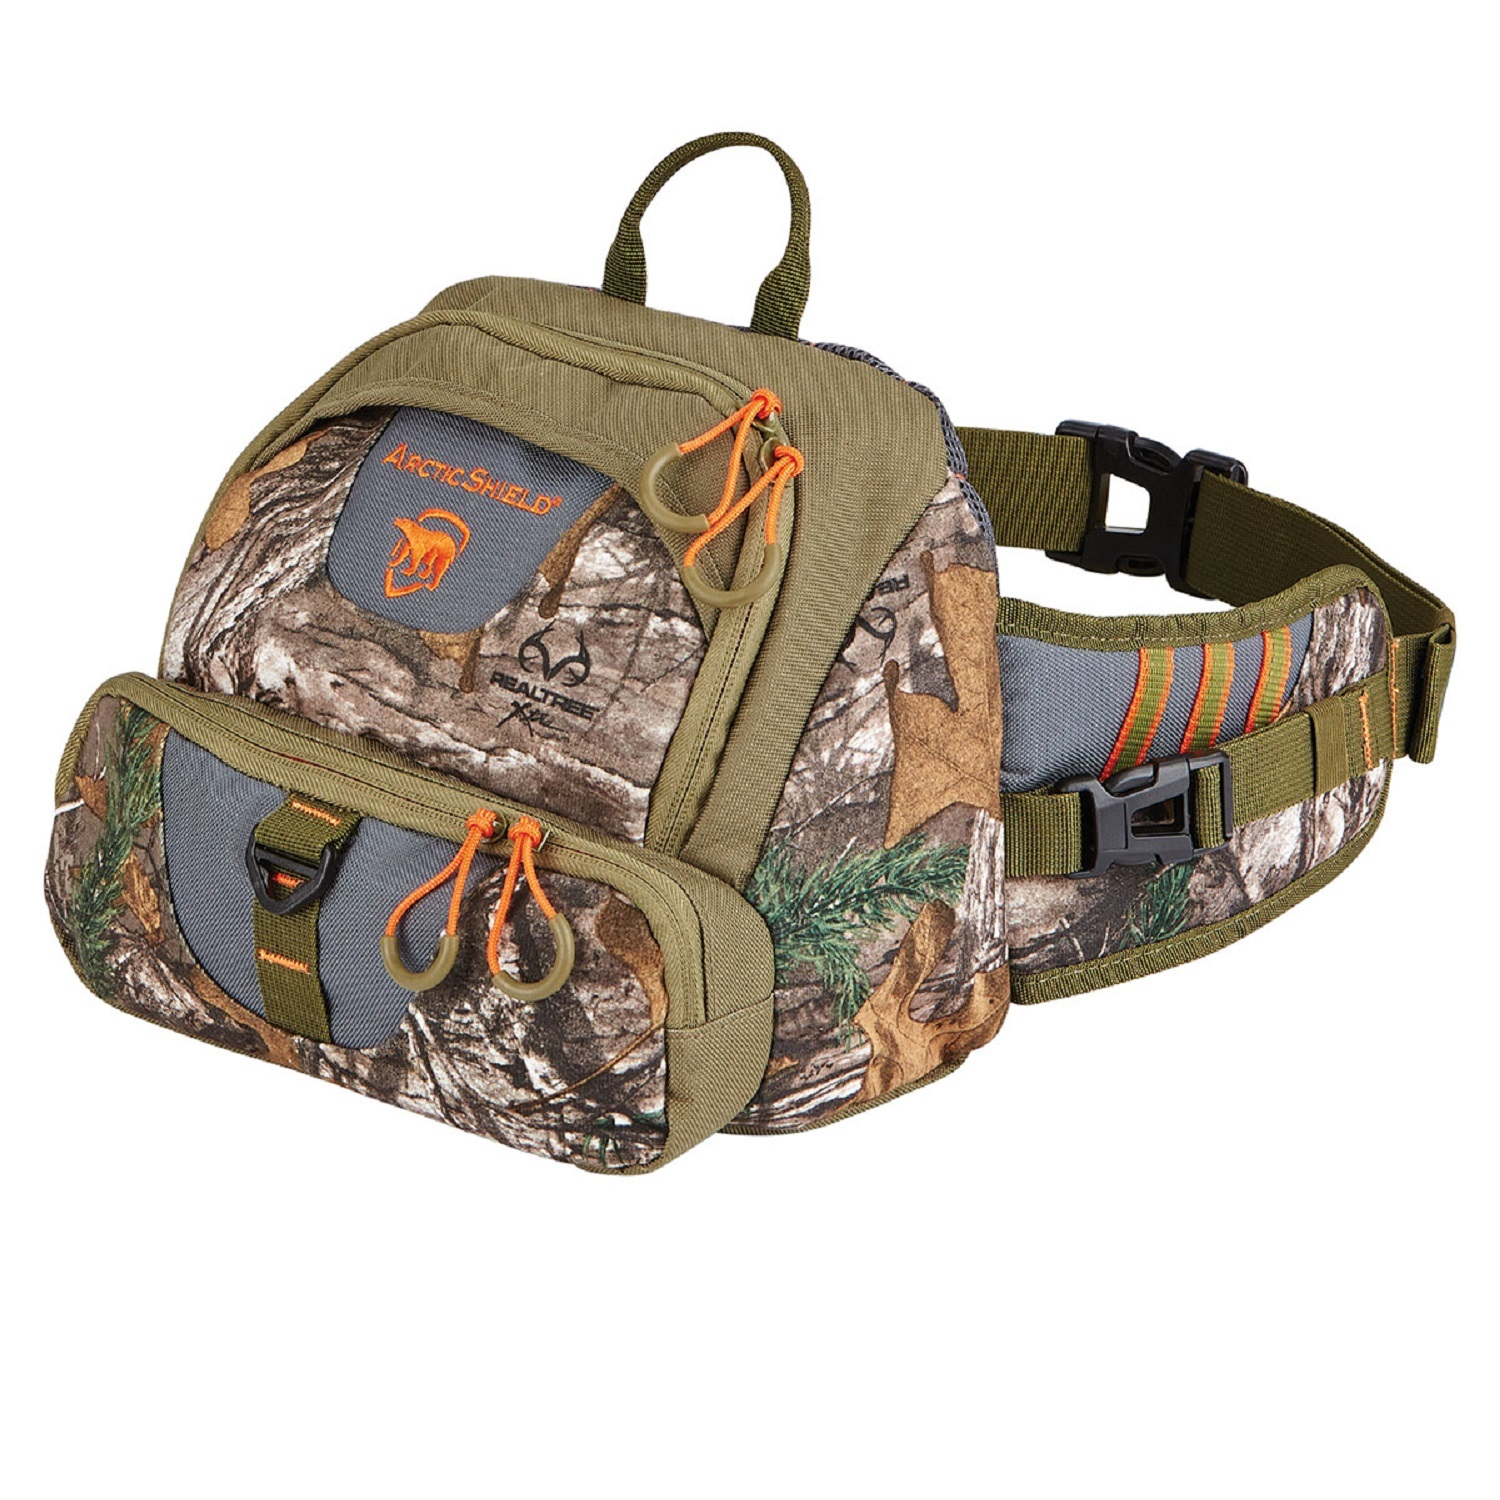 Onyx Outdoor F2X Realtree Xtra Waistpack SKU: 560300-802-999-15 with Elite Tactical Cloth